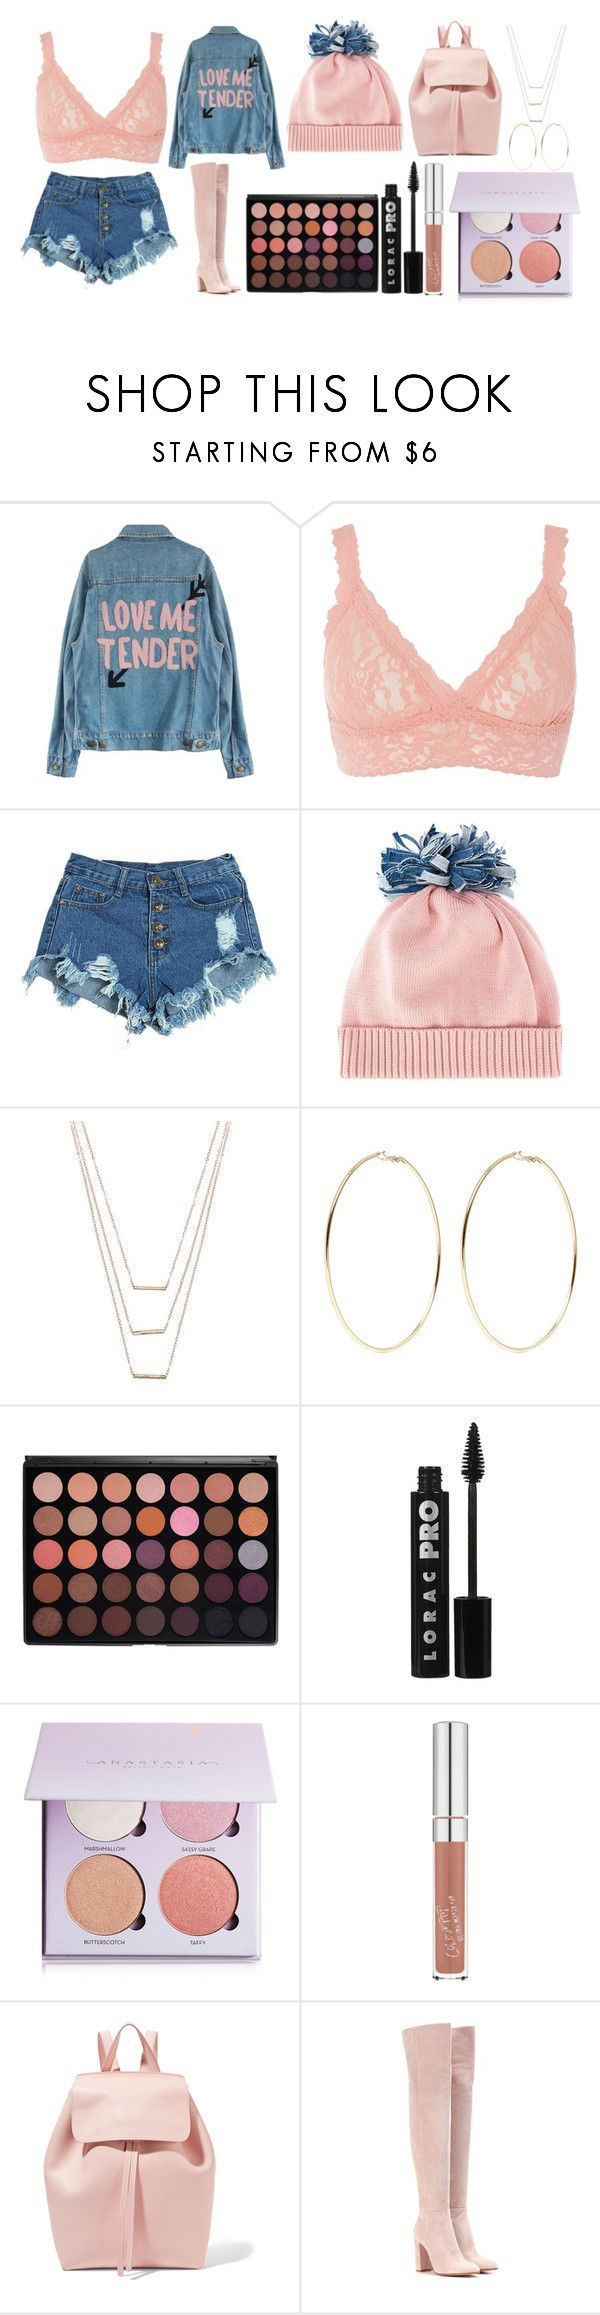 """""""Untitled #293"""" by alreemaljassim ❤ liked on Polyvore featuring Hanky Panky, WithChic, Federica Moretti, ERTH, Kenneth Jay Lane, LORAC, Anastasia Beverly Hills, Mansur Gavriel and Gianvito Rossi"""